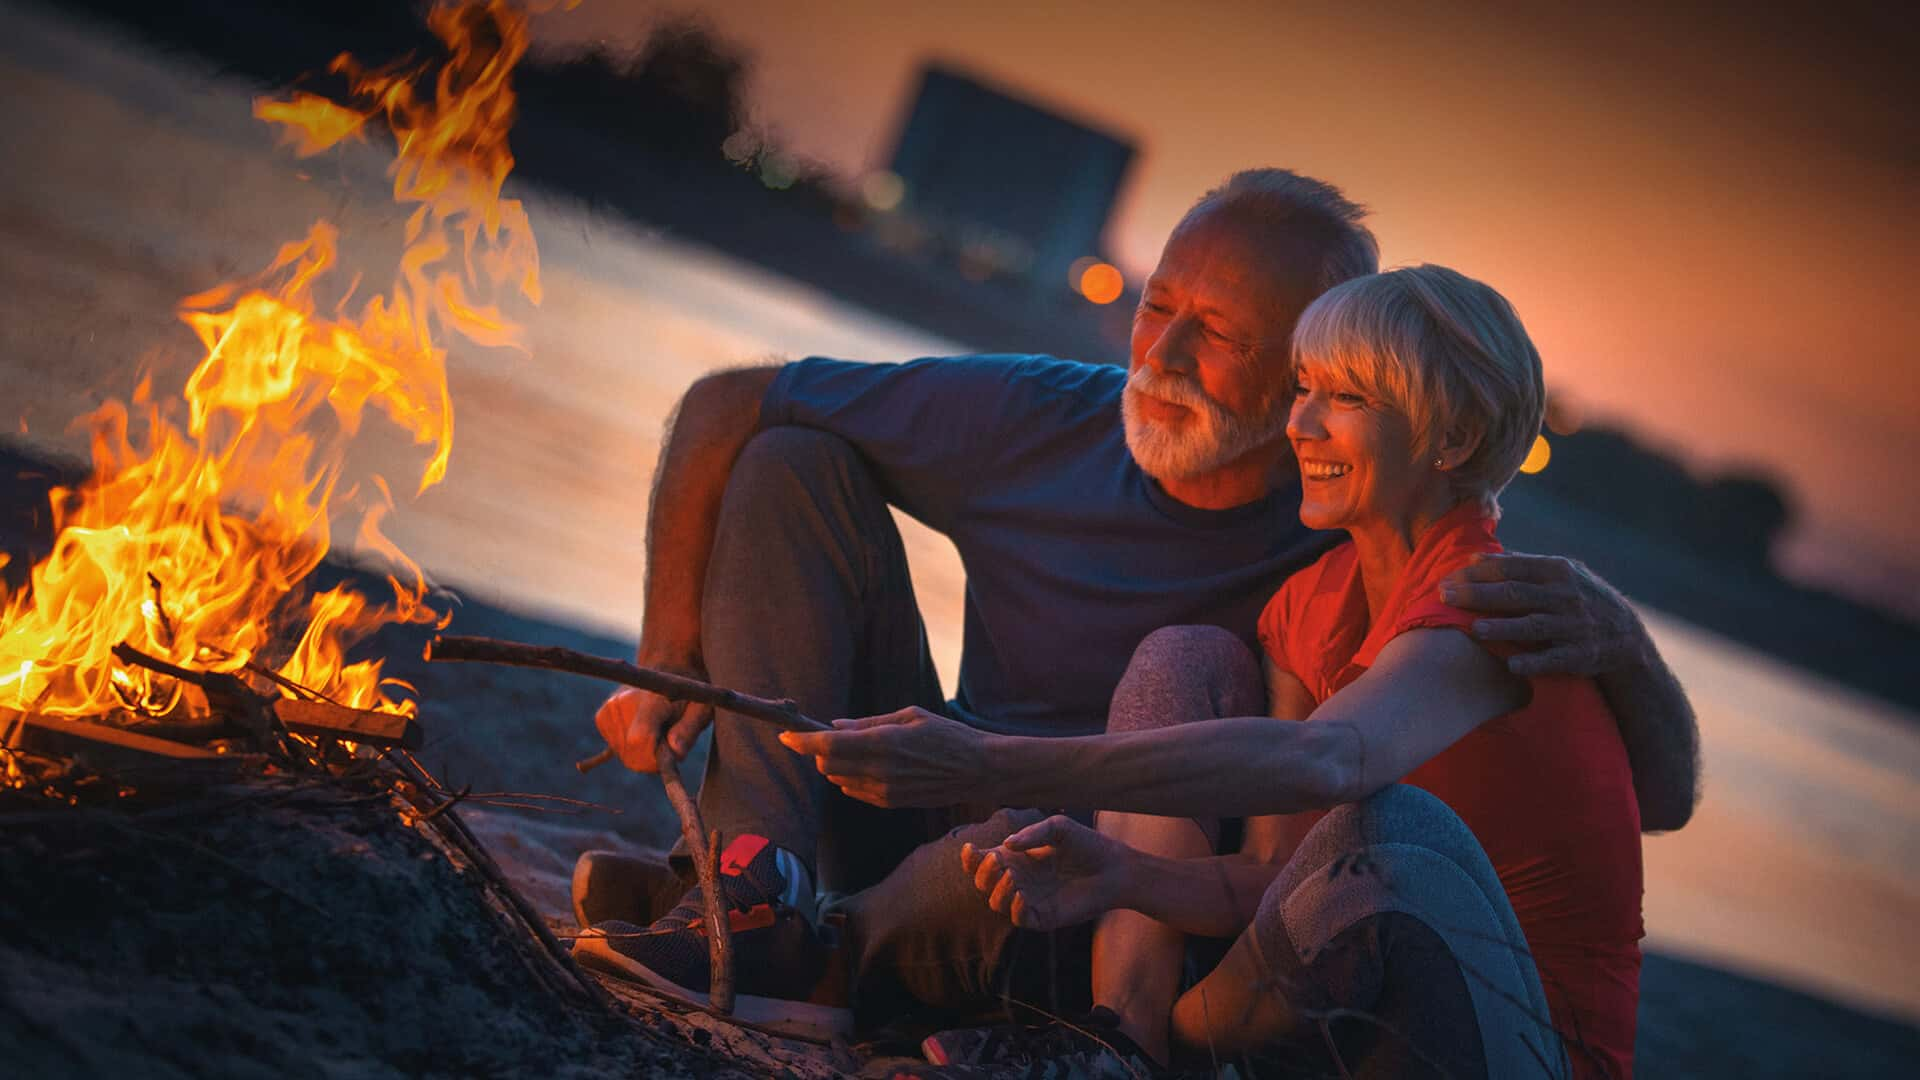 60s dating symbolized by a happy couple sitting in front of a campfire